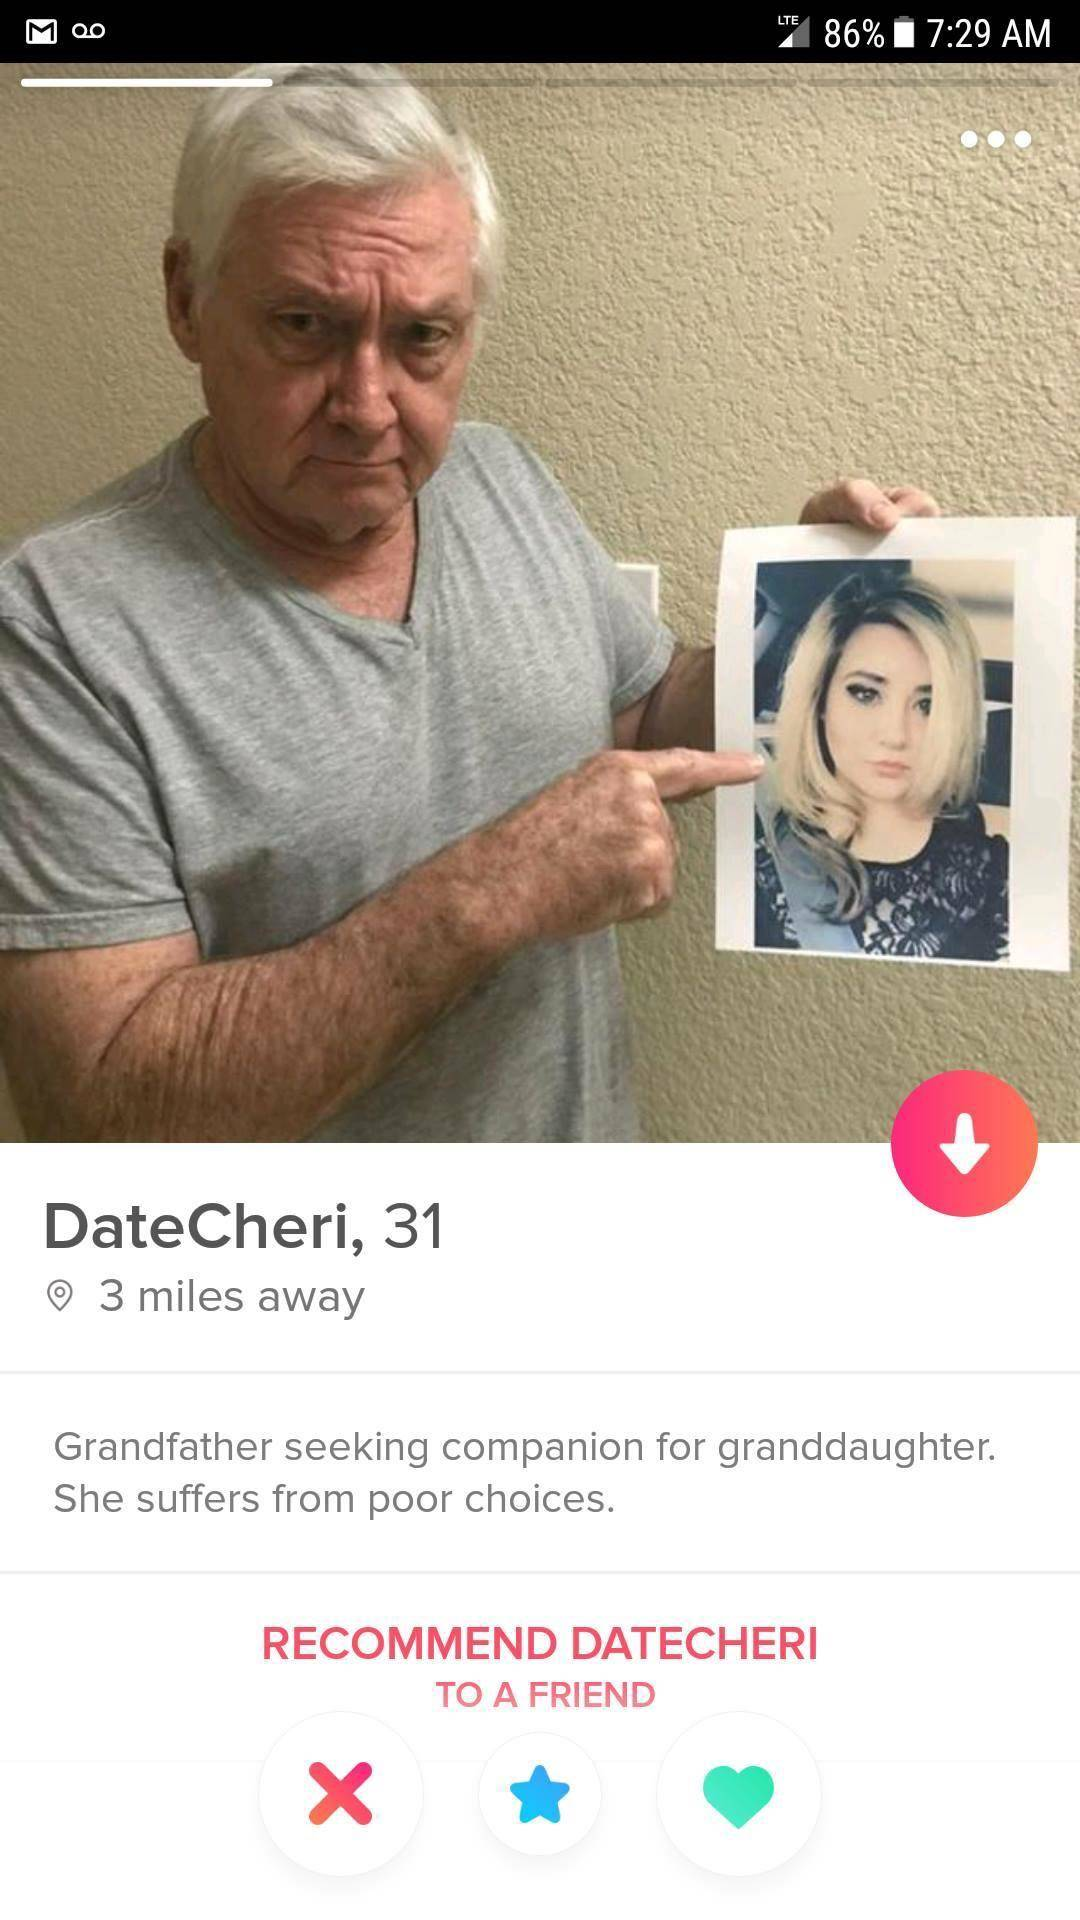 Tinder profile: DateCheri: Grandfather seeking companion for granddaughter. She suffers from poor choices.